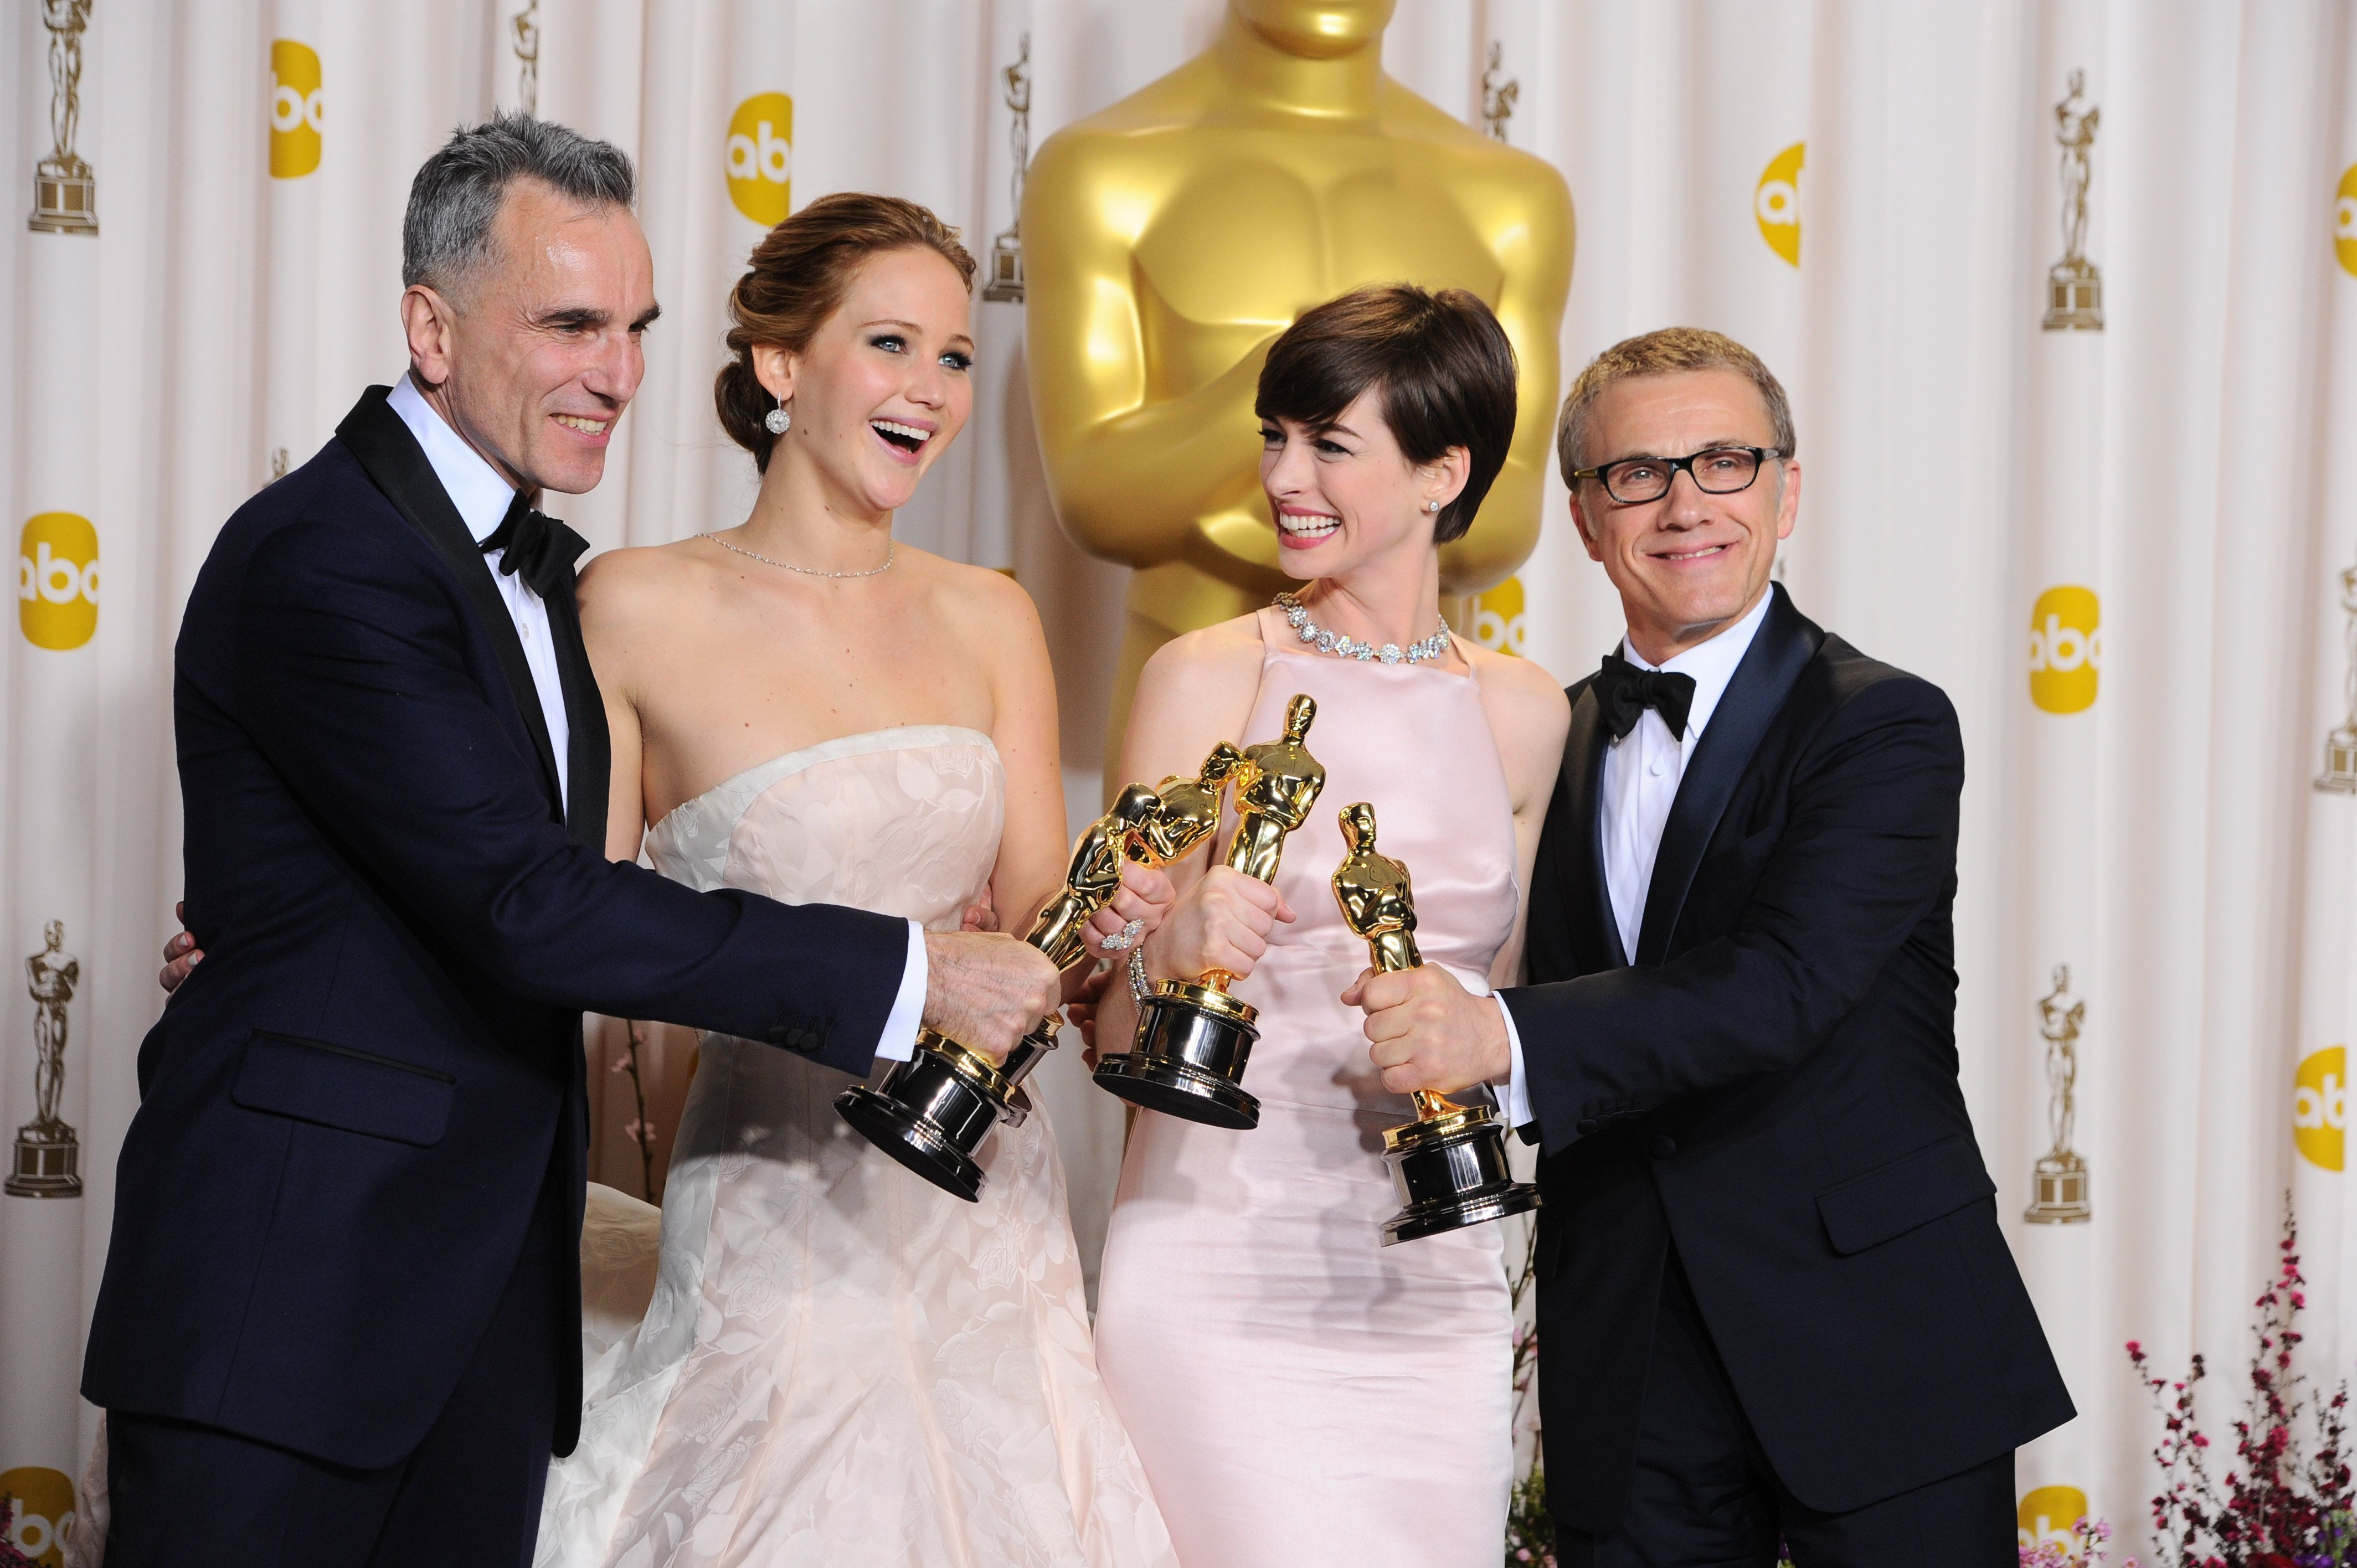 Daniel Day Lewis, Jennifer Lawrence, Anne Hathaway and Christoph Waltz pose with their Oscars during the 85th Annual Academy Awards in Hollywood on Feb. 24, 2013.